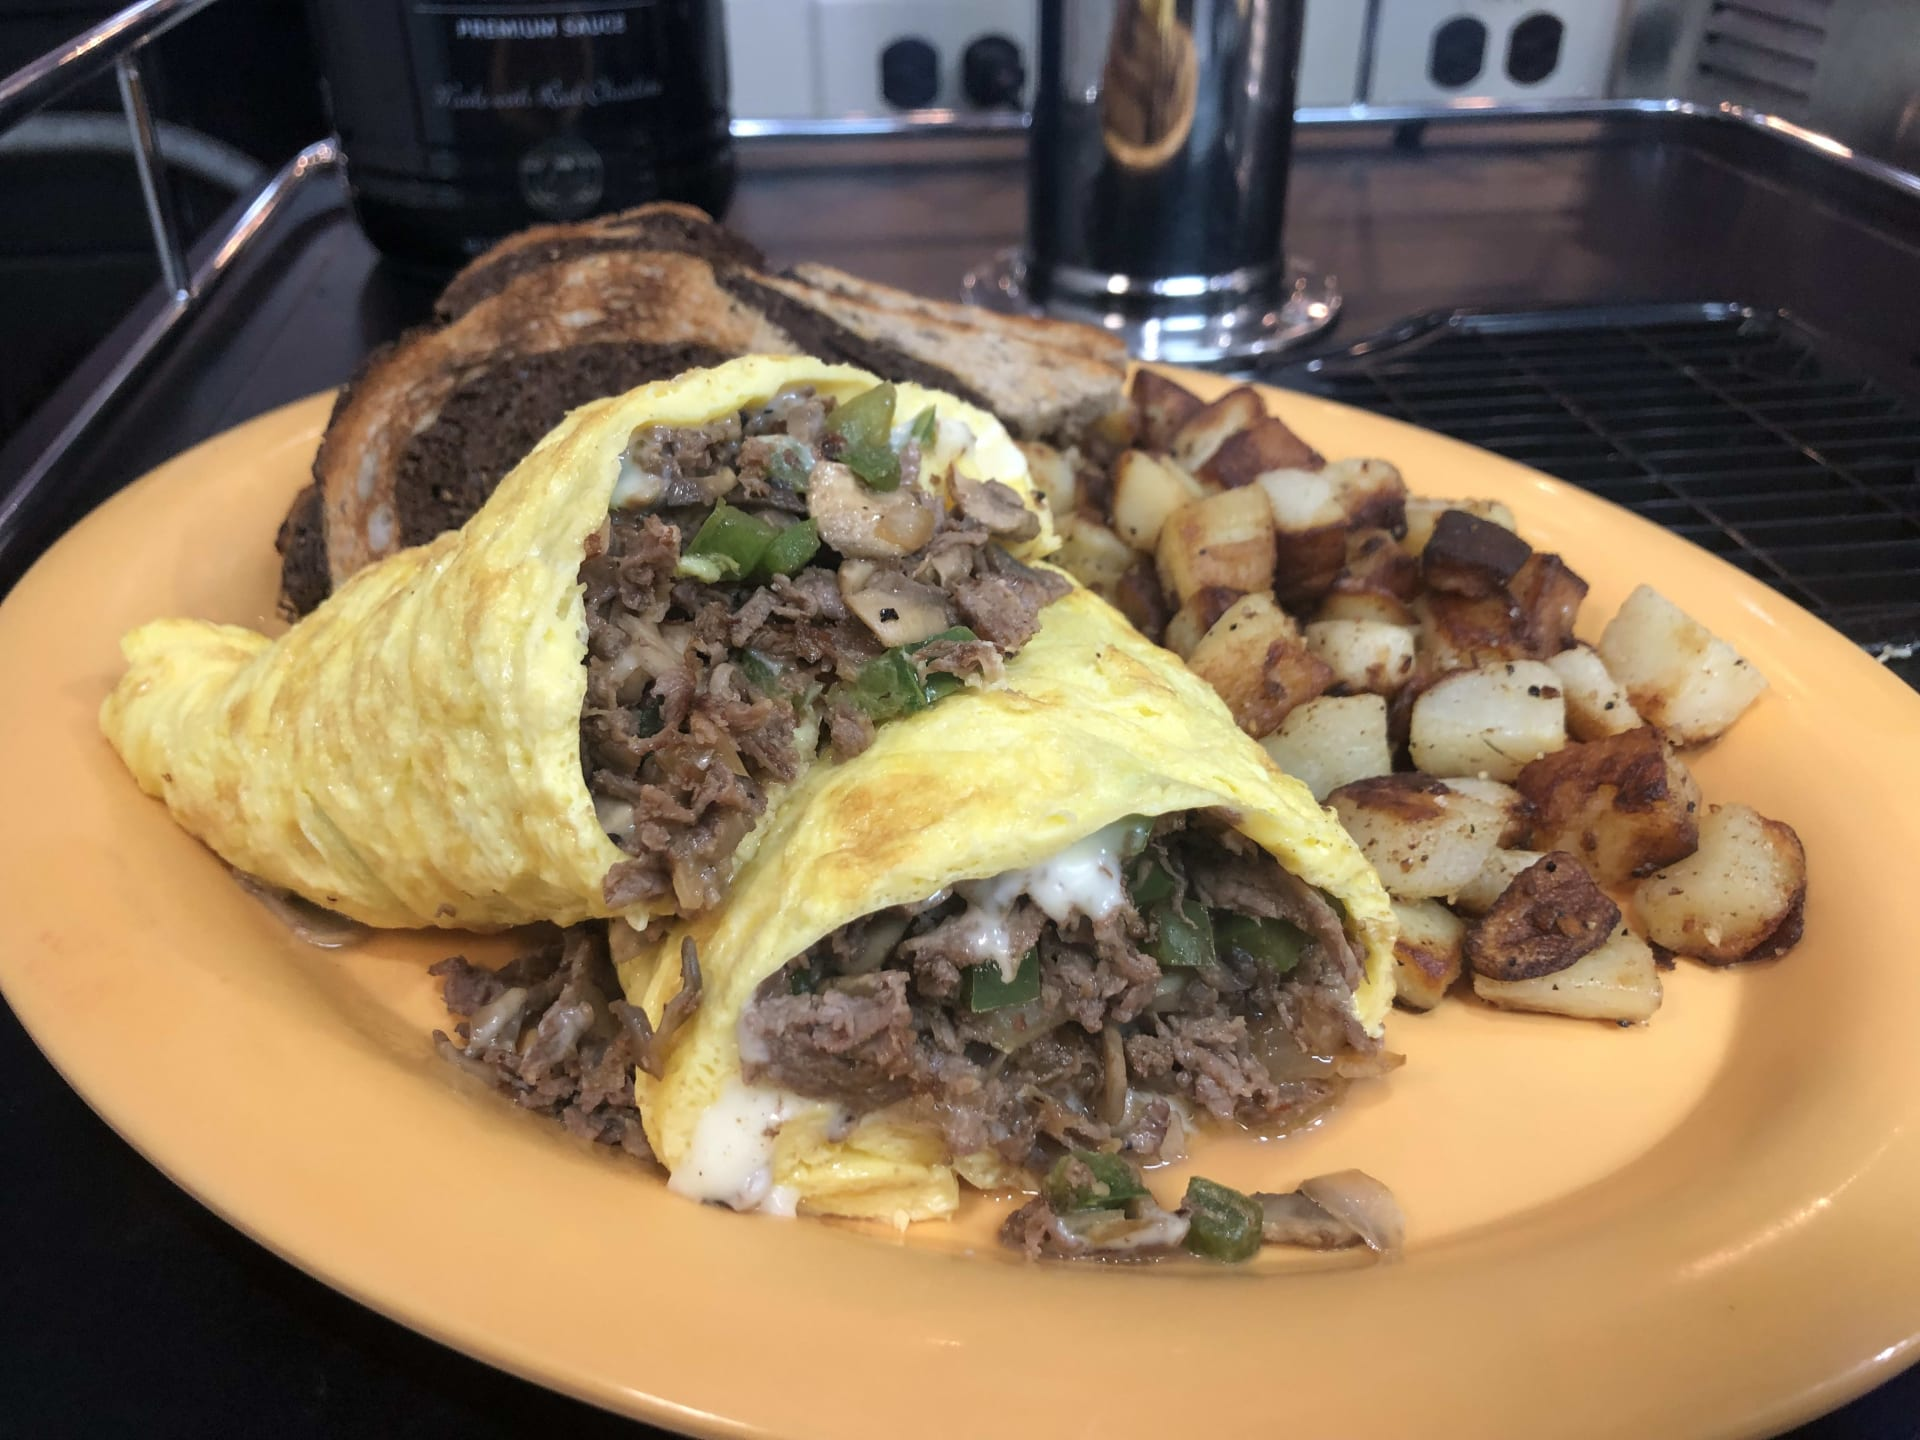 Delicious omelette with homefries